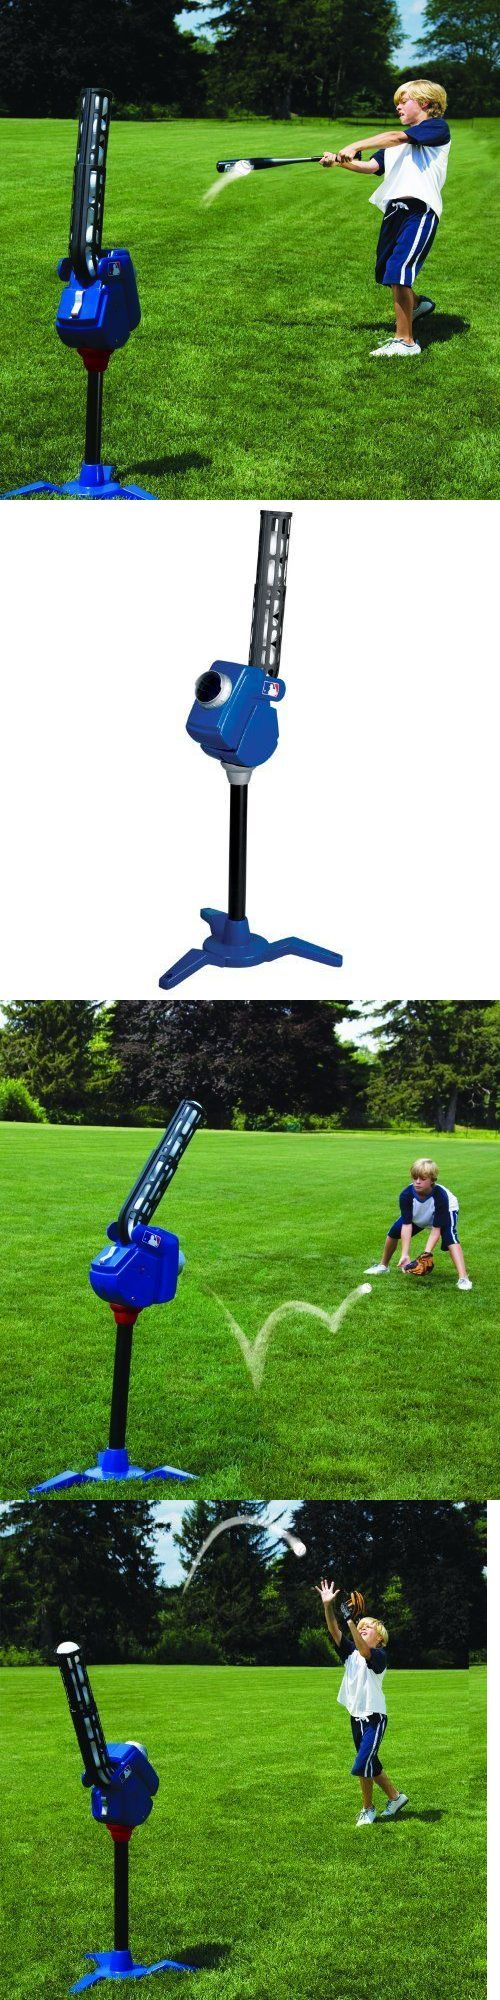 Pitching Machines 58061: Baseball Softball Pitching Machine Batting Fielding Soft Fast Pitch Wiffle Jugs -> BUY IT NOW ONLY: $49.99 on eBay!